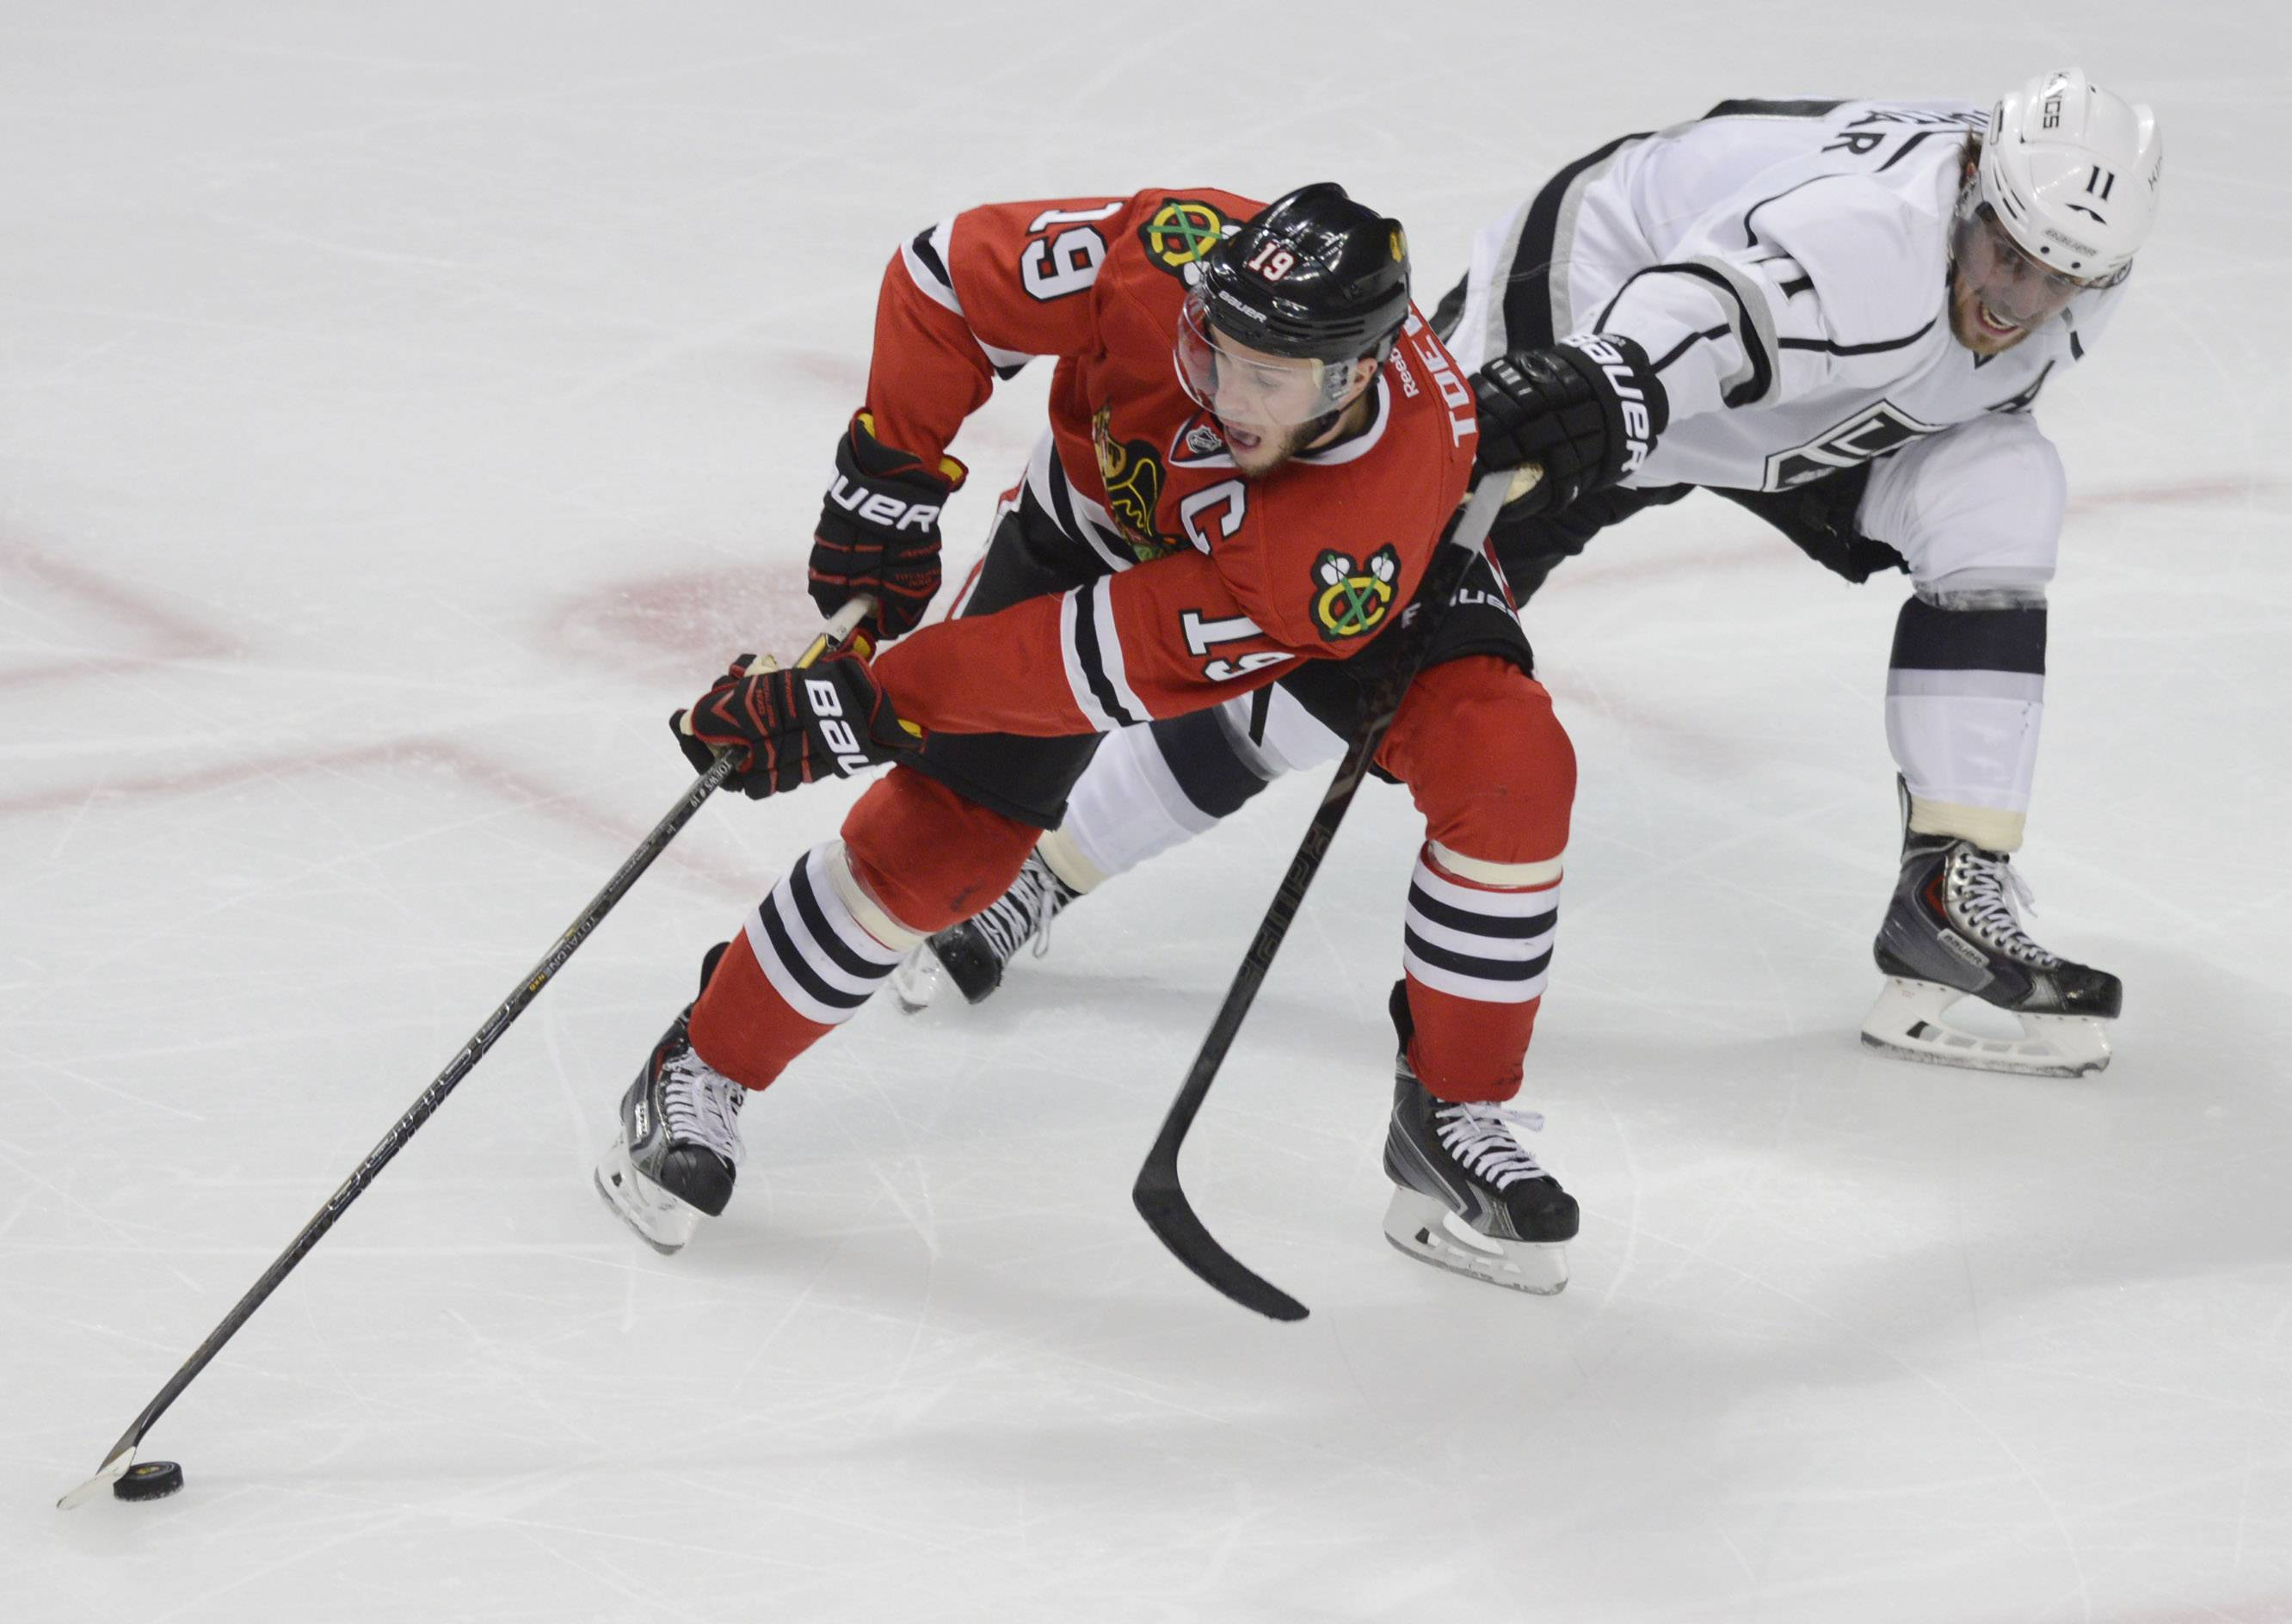 Chicago Blackhawks center Jonathan Toews tries to get past Los Angeles Kings center Anze Kopitar during Sunday's game at the United Center in Chicago.